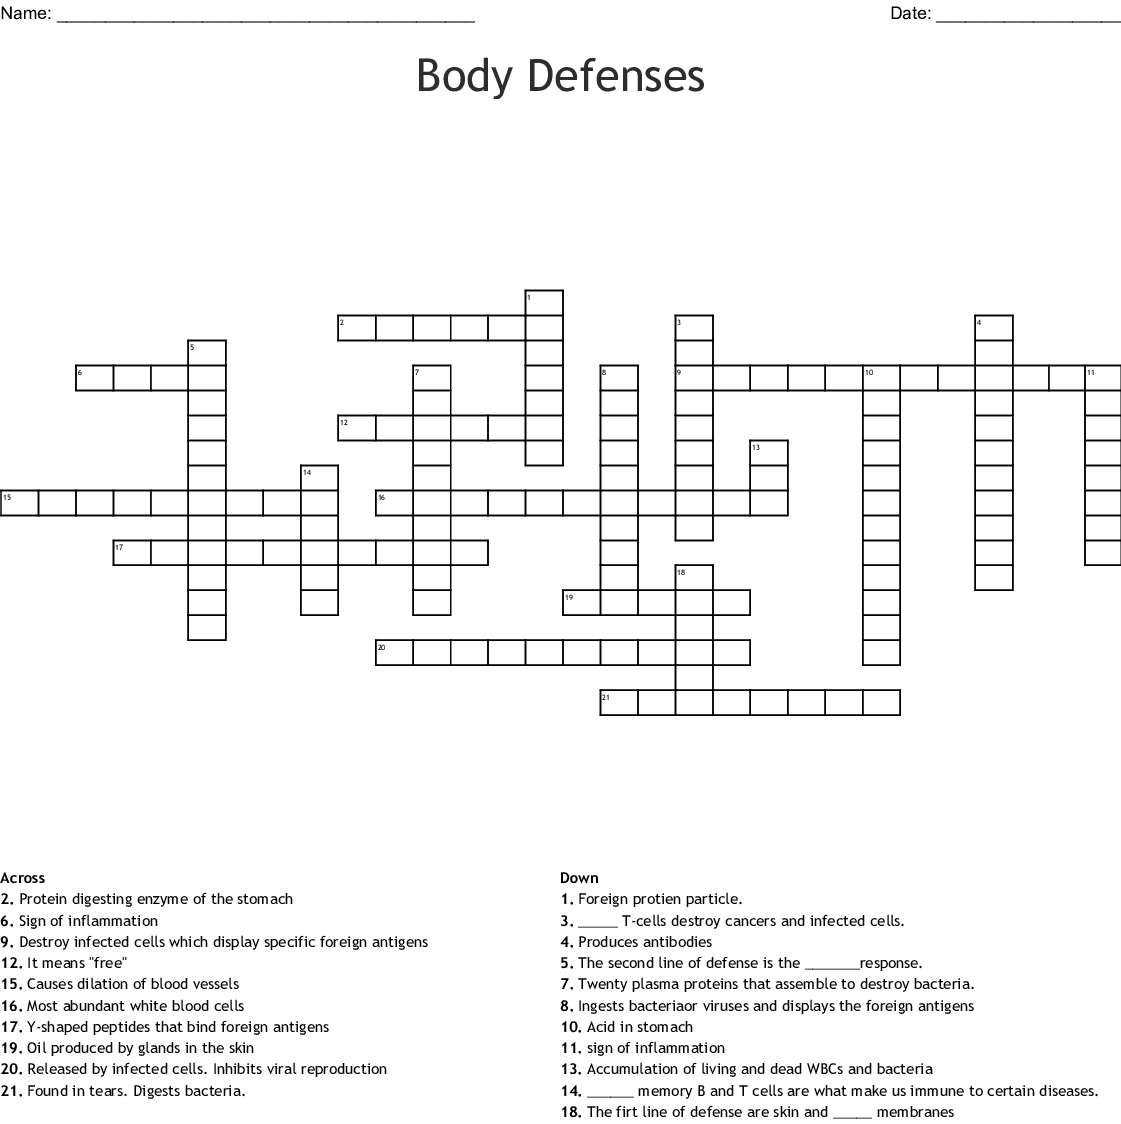 Body Defenses Crossword